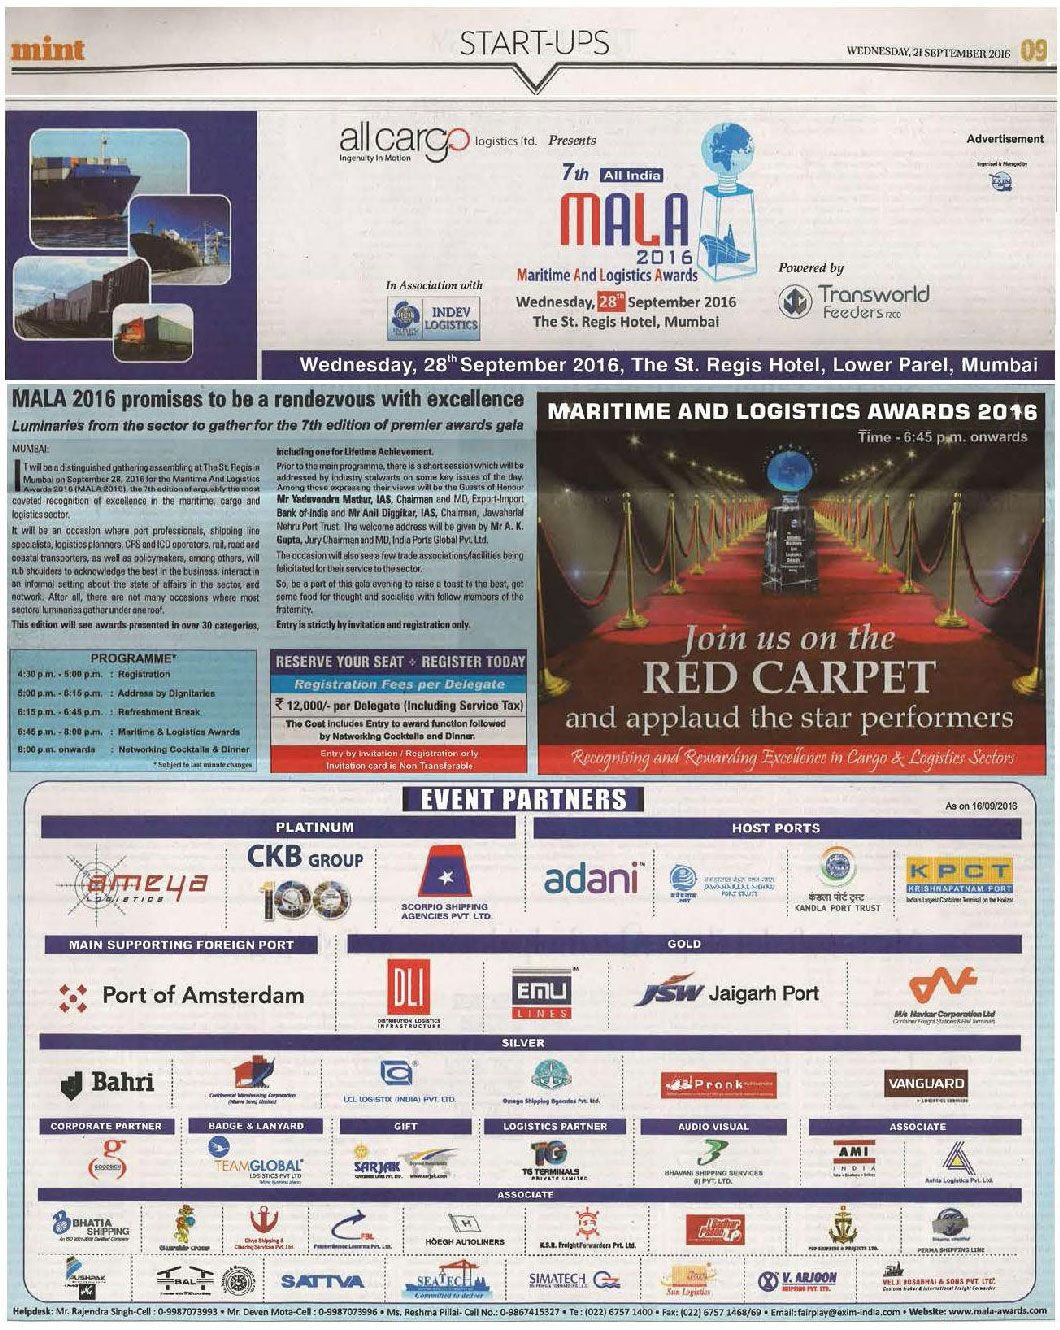 One of the Prime Sponsors for 7th Maritime & Logistics Awards 2016